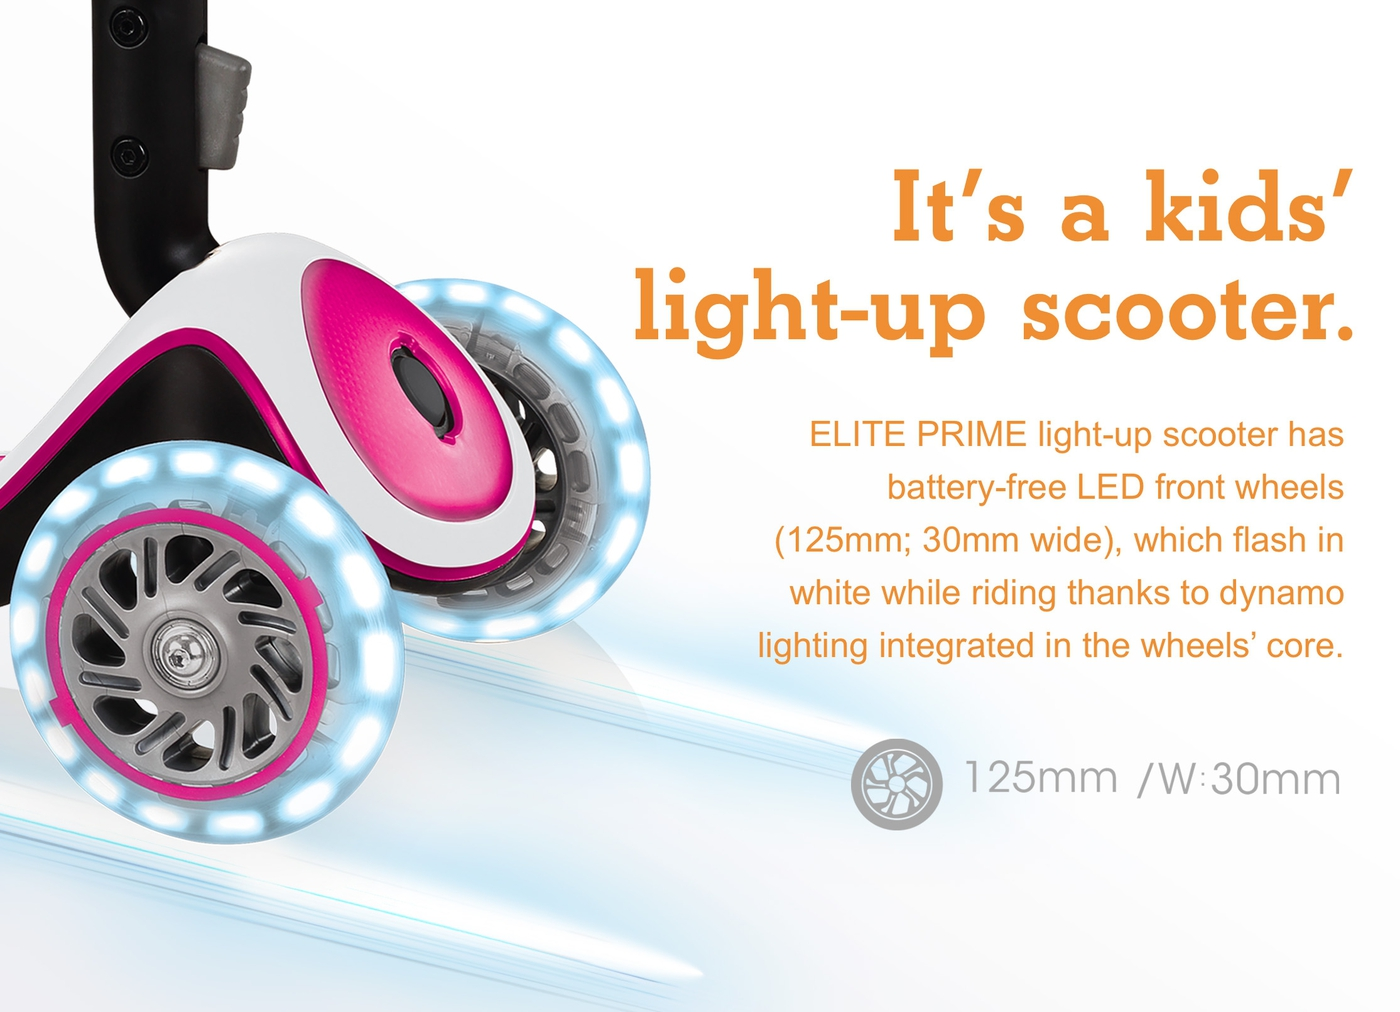 It's a kids' light-up scooter.